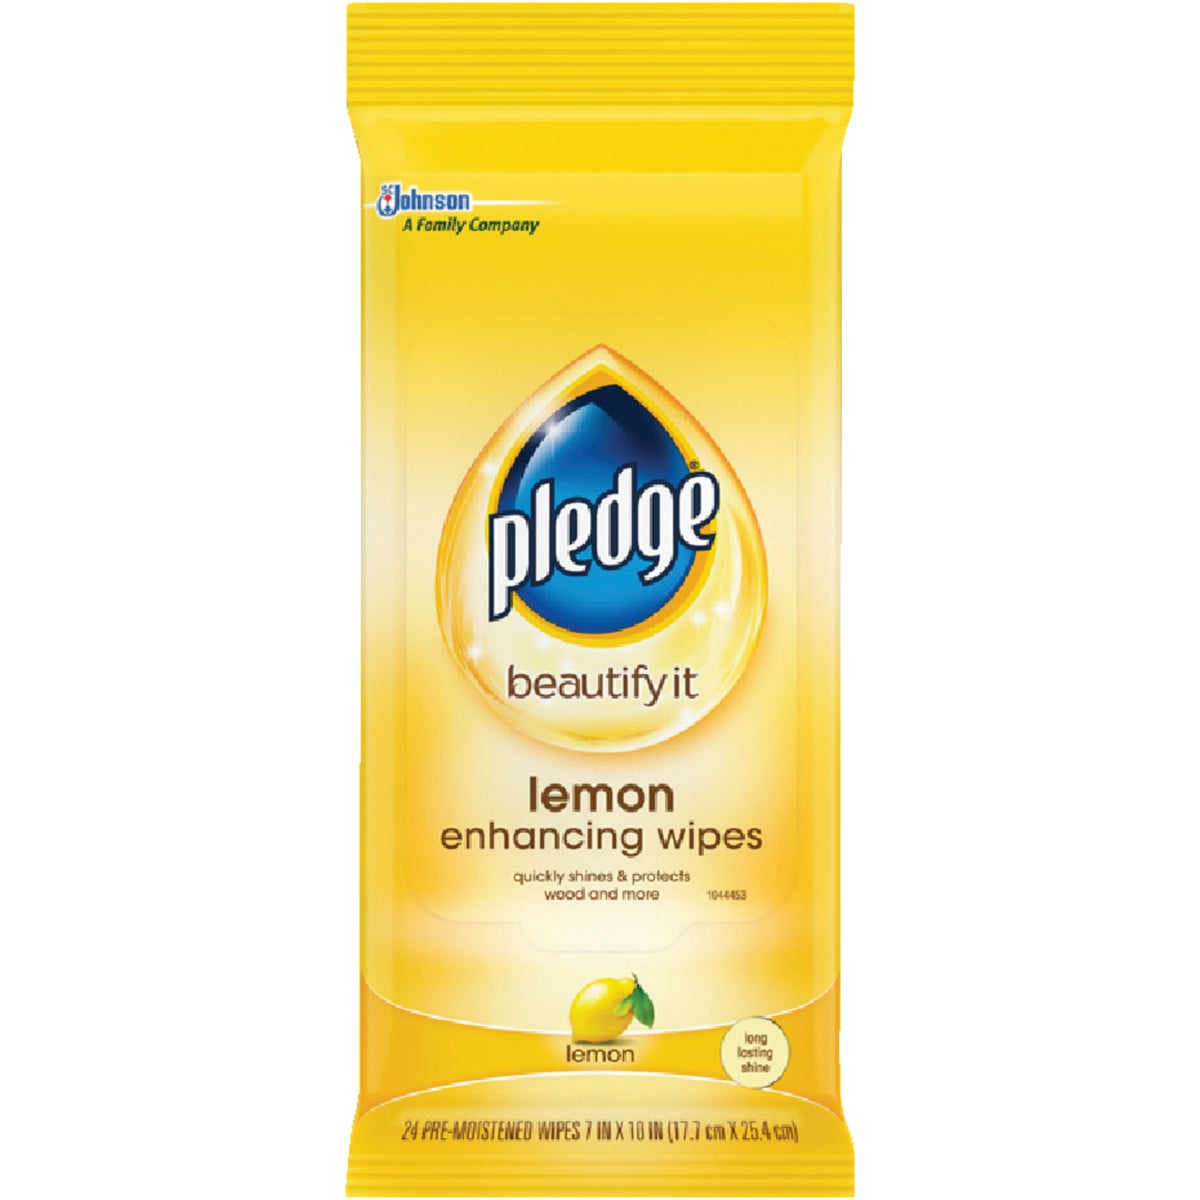 24CT LEMON POLISH WIPES - 72807 by Sc Johnson